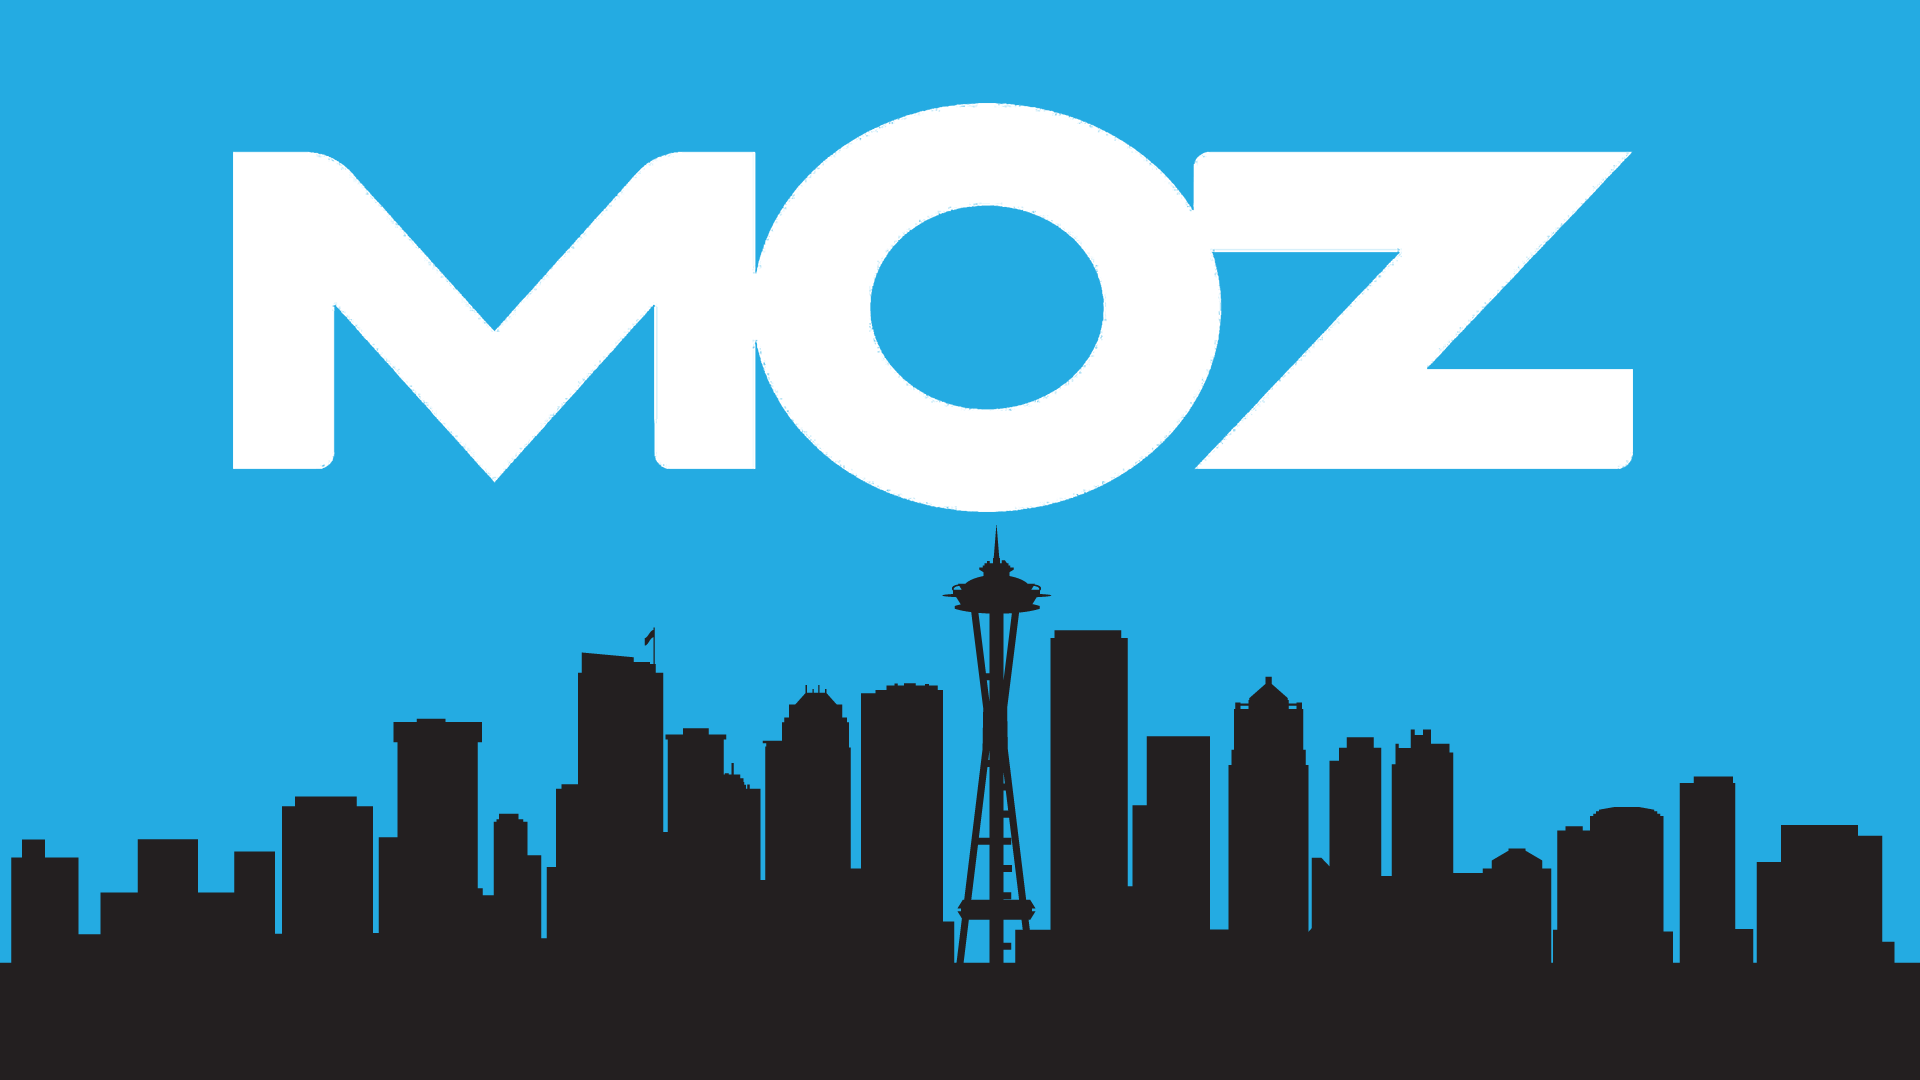 moz-logo-seattle-skyline-ss-1920.png